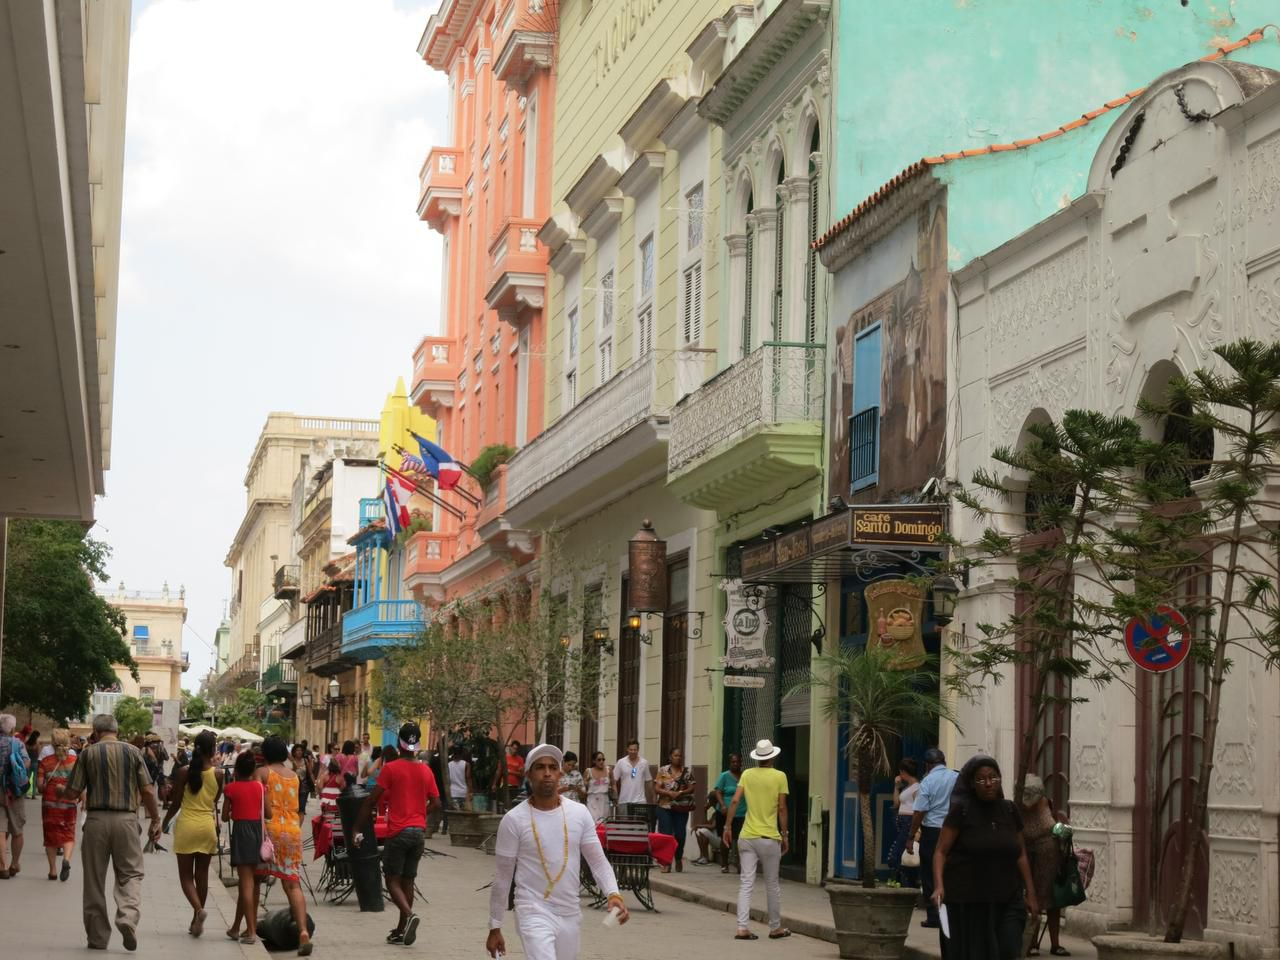 The streets of Havana are lined with architecturally interesting buildings painted in pastel colors.